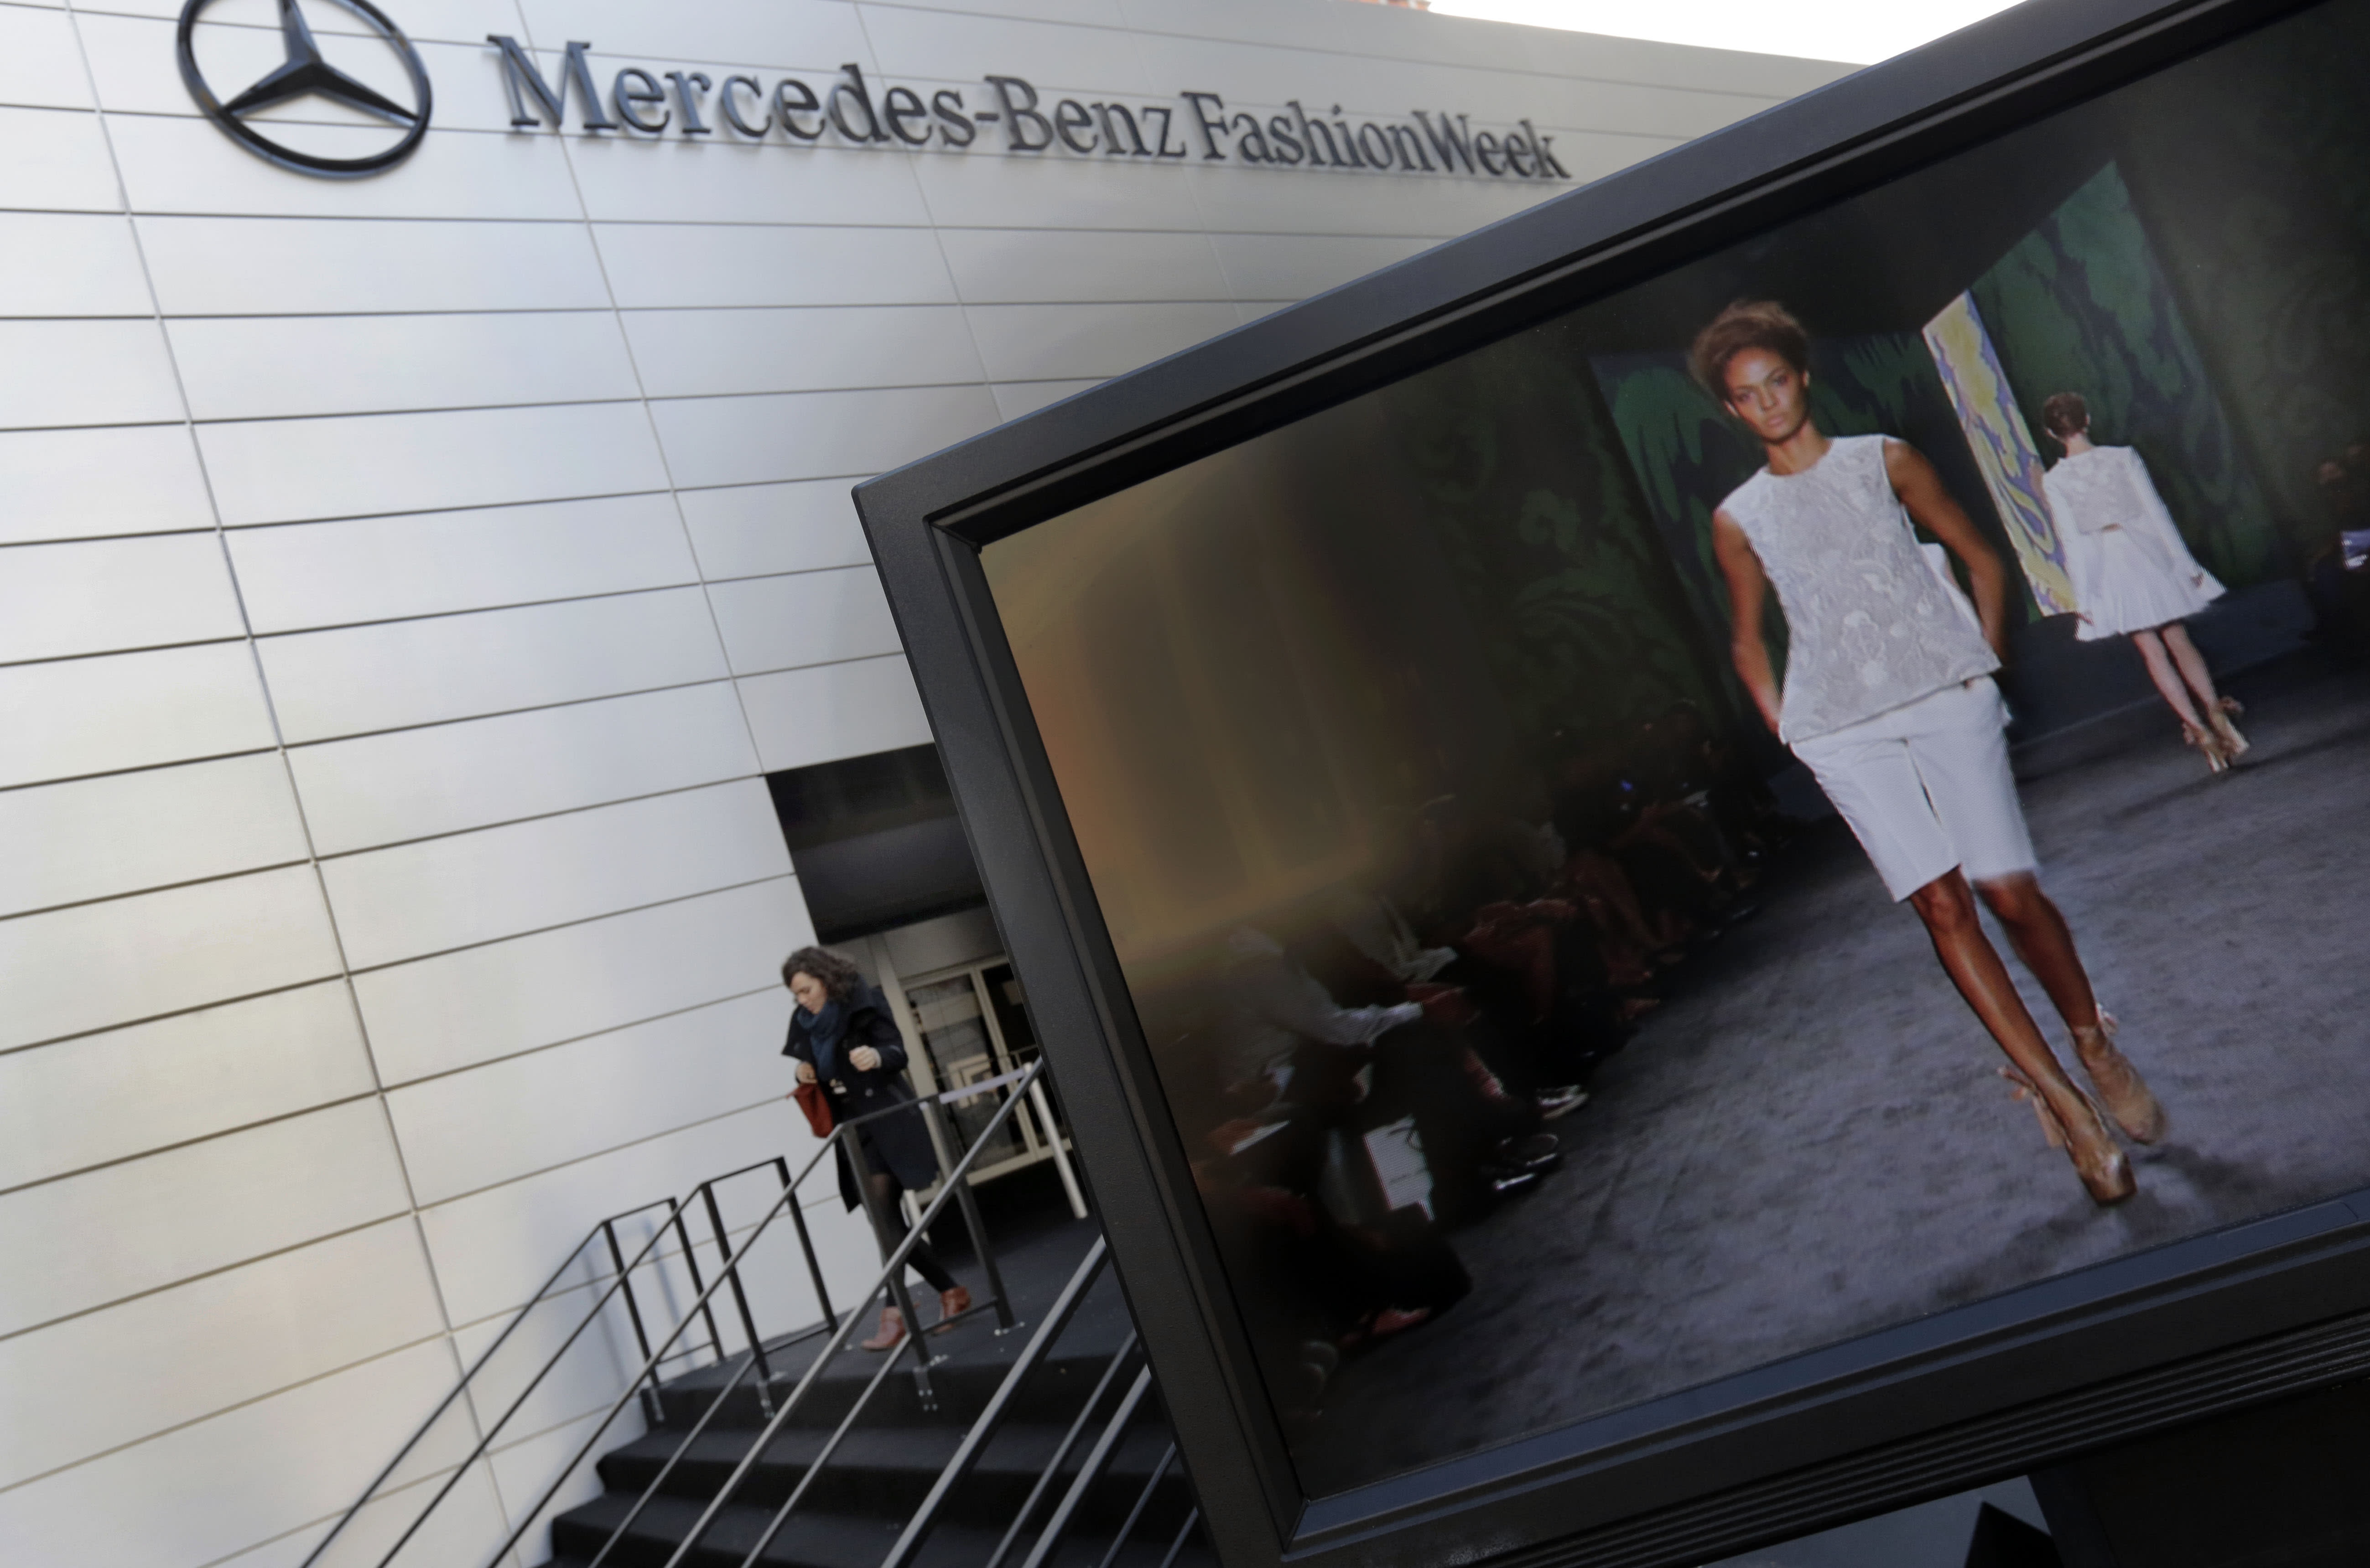 New York Fashion Week booted out of Lincoln Center